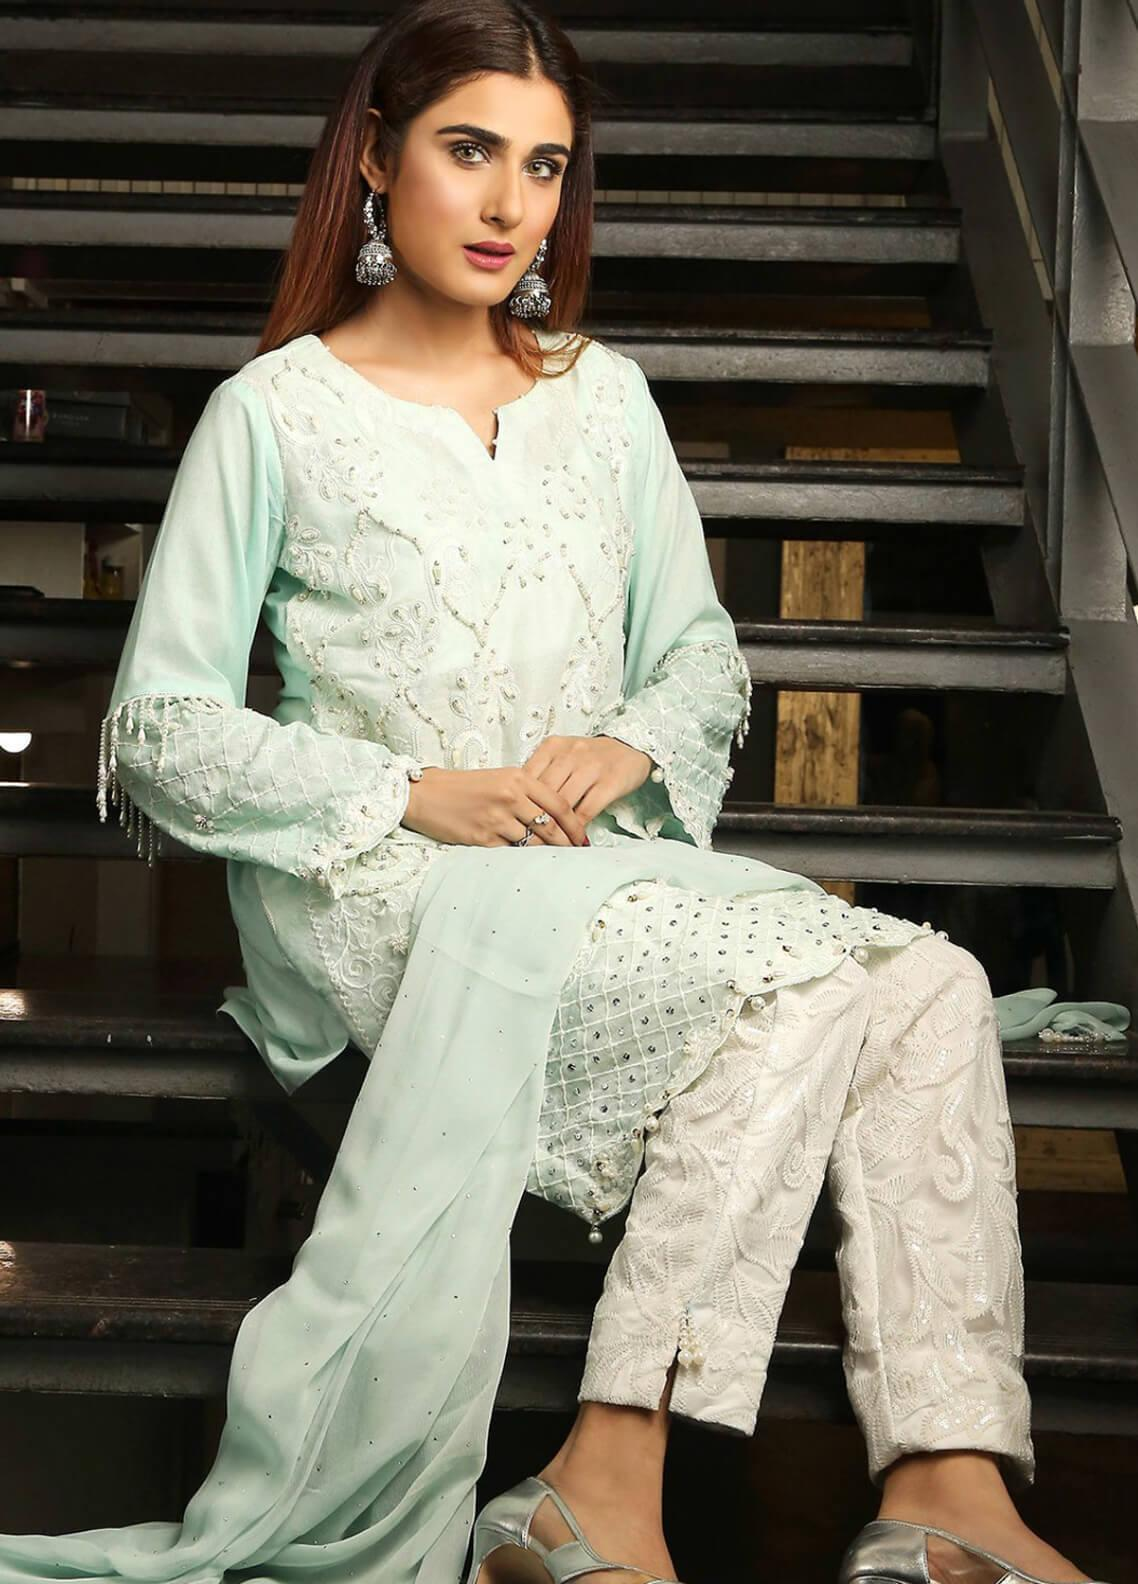 Bright Latest Le Chiffon Designer Collection Wear Dress Pakistani Shalwar Kameez Suit Selected Material Women's Clothing